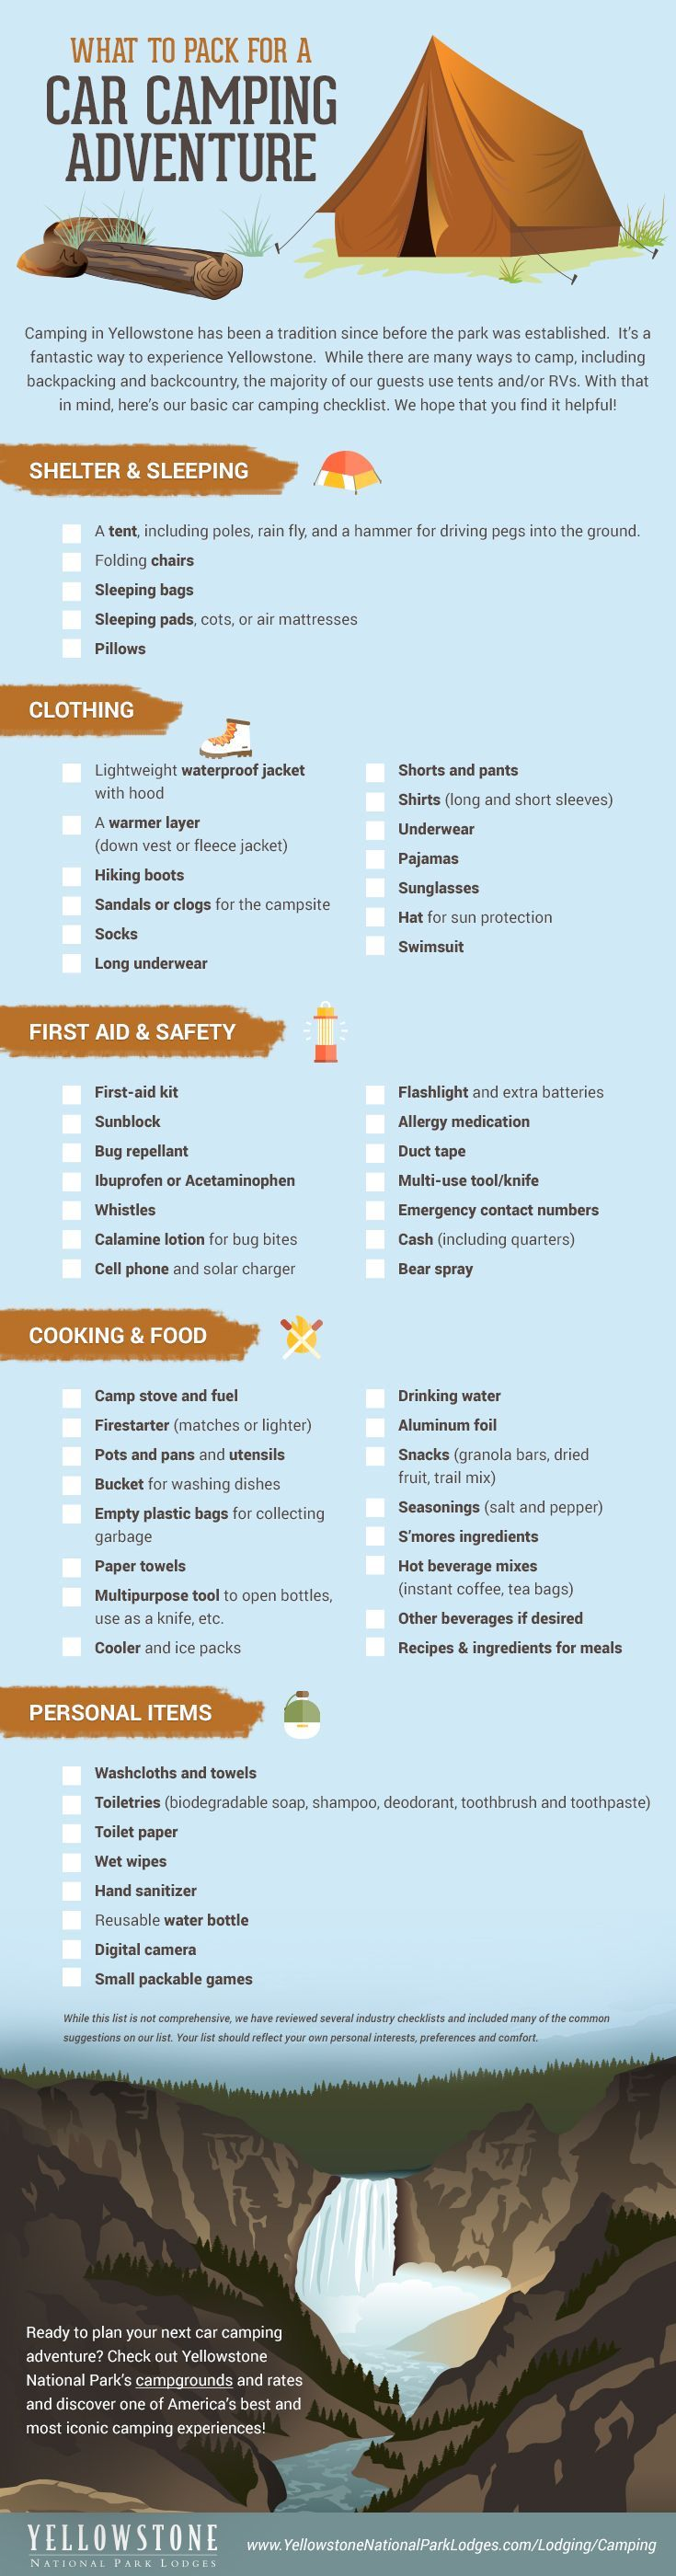 Since Before The Park Was Established And Its A Fantastic Way To Experience Yellowstone With That In Mind Heres Basic Car Camping Checklist